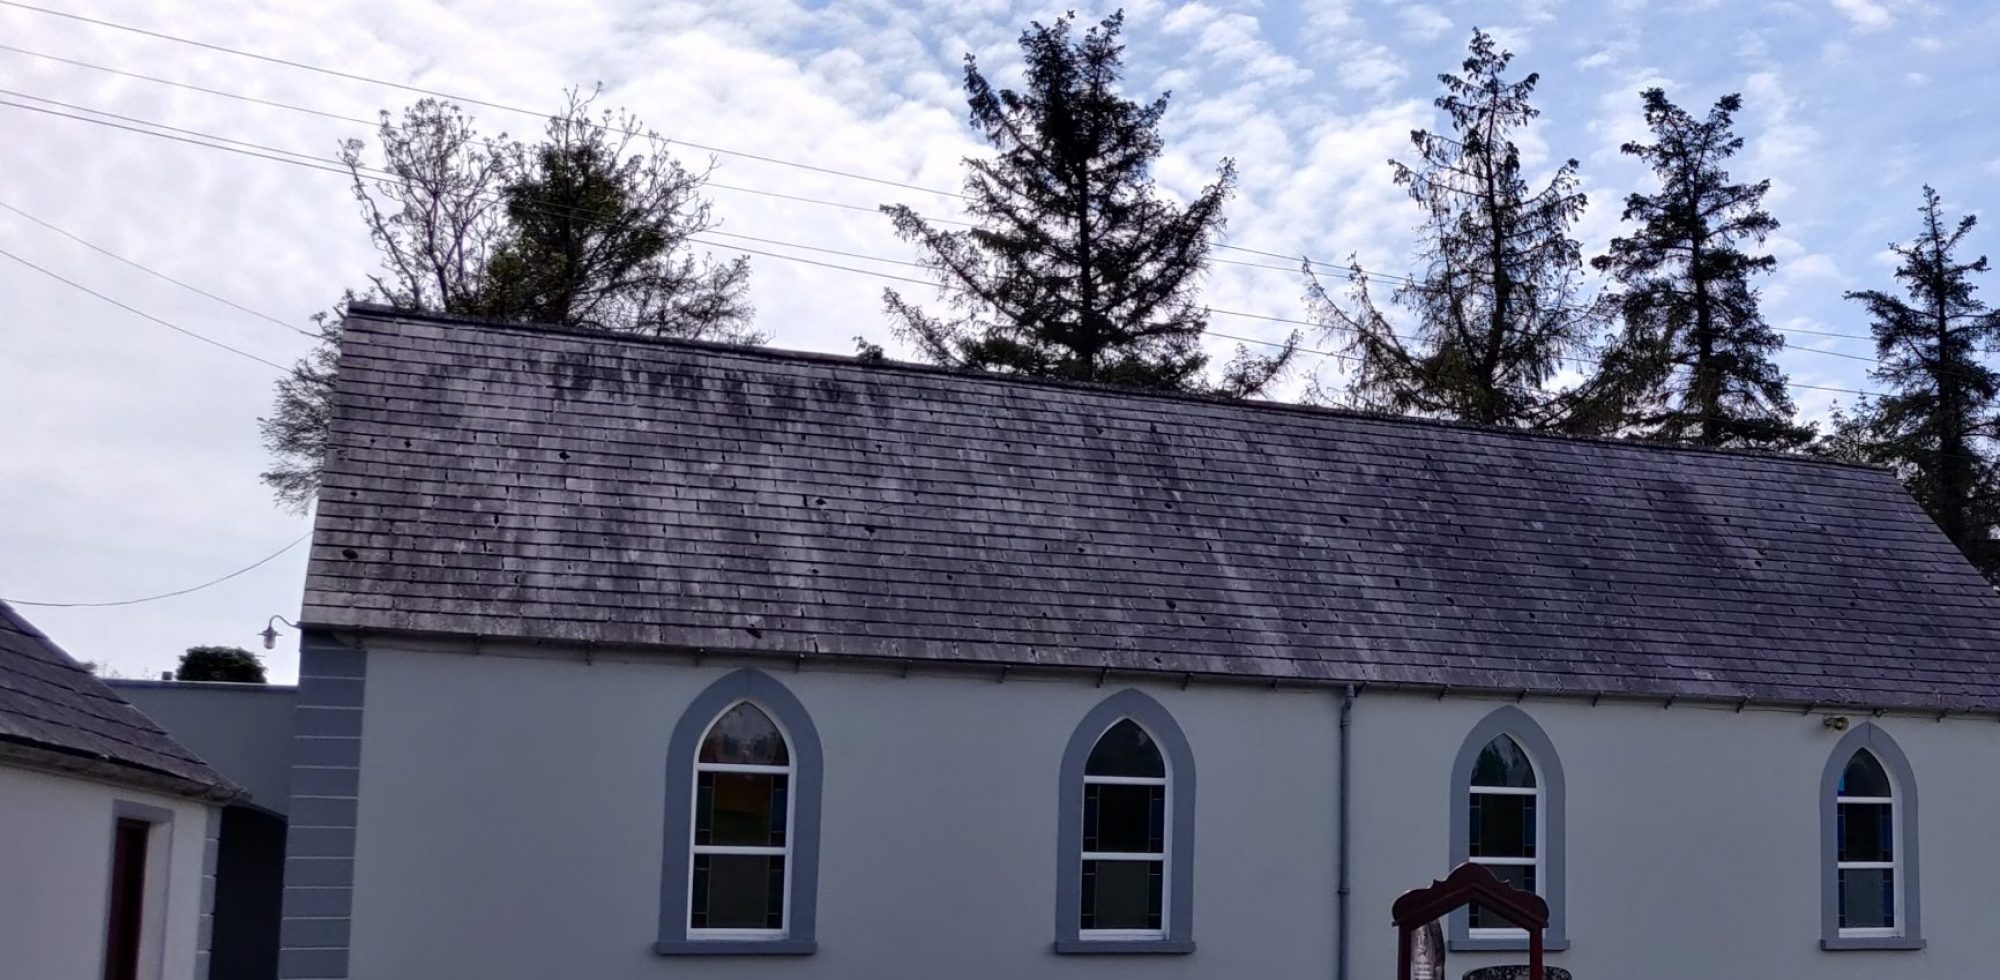 The Bailieborough Group of Presbyterian Churches